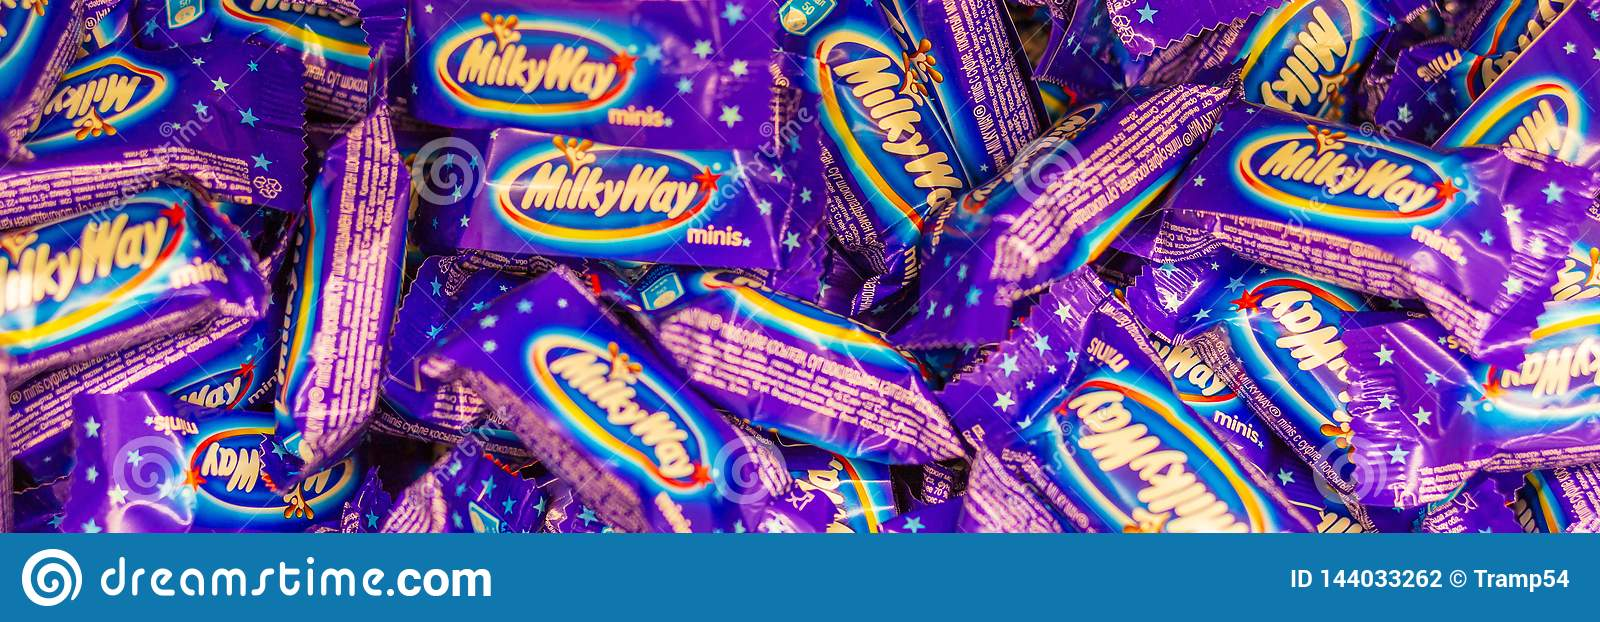 Milky Way chocolate bars on store shelves, texture. Text in Russian: chocolate bar